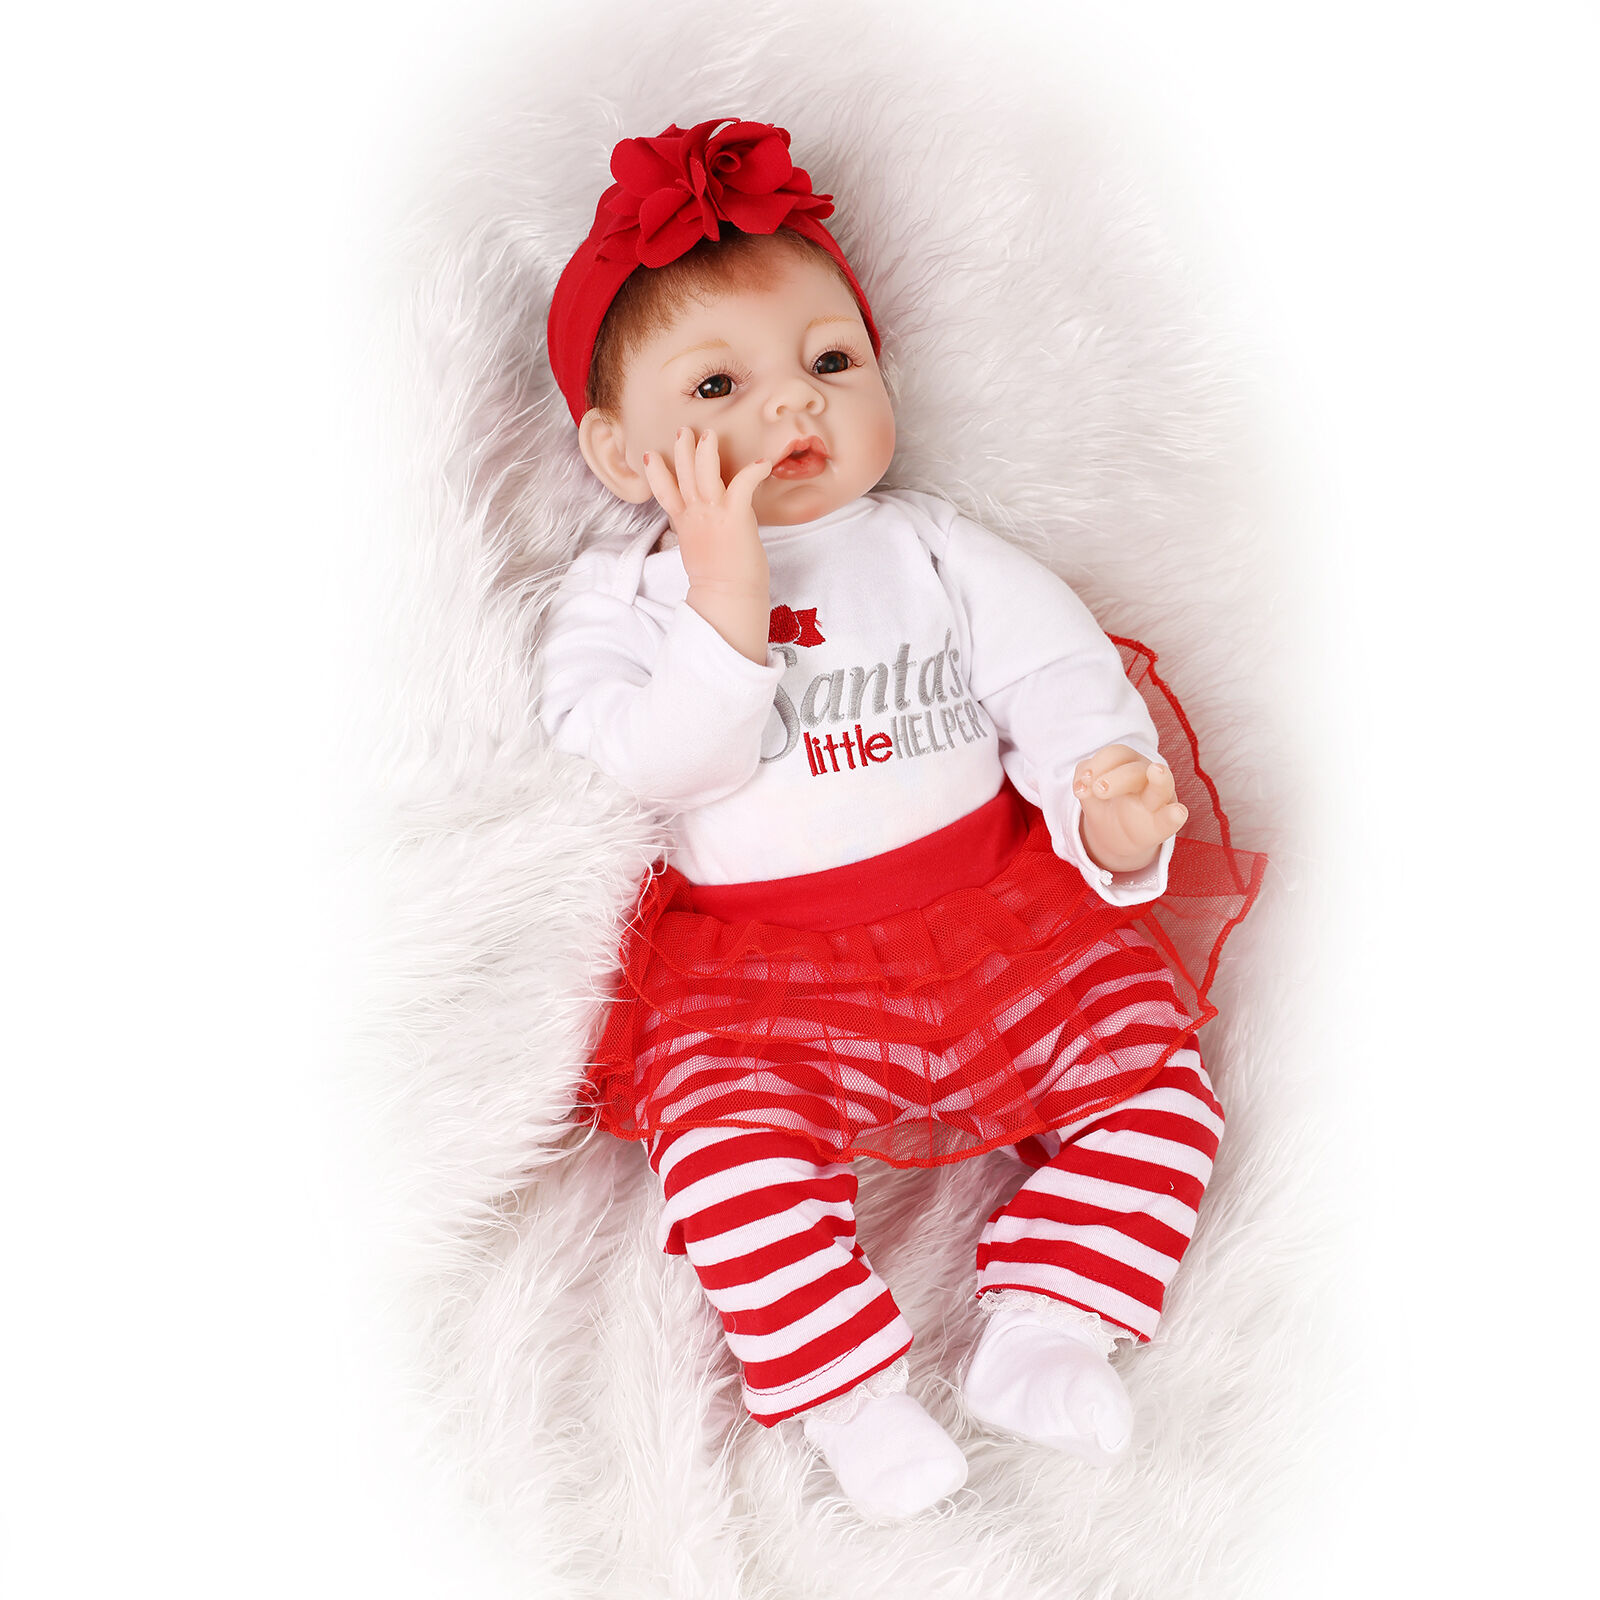 Nicery Reborn Baby Doll Soft Silicone Girl Toy 22in 55cm Red Santa